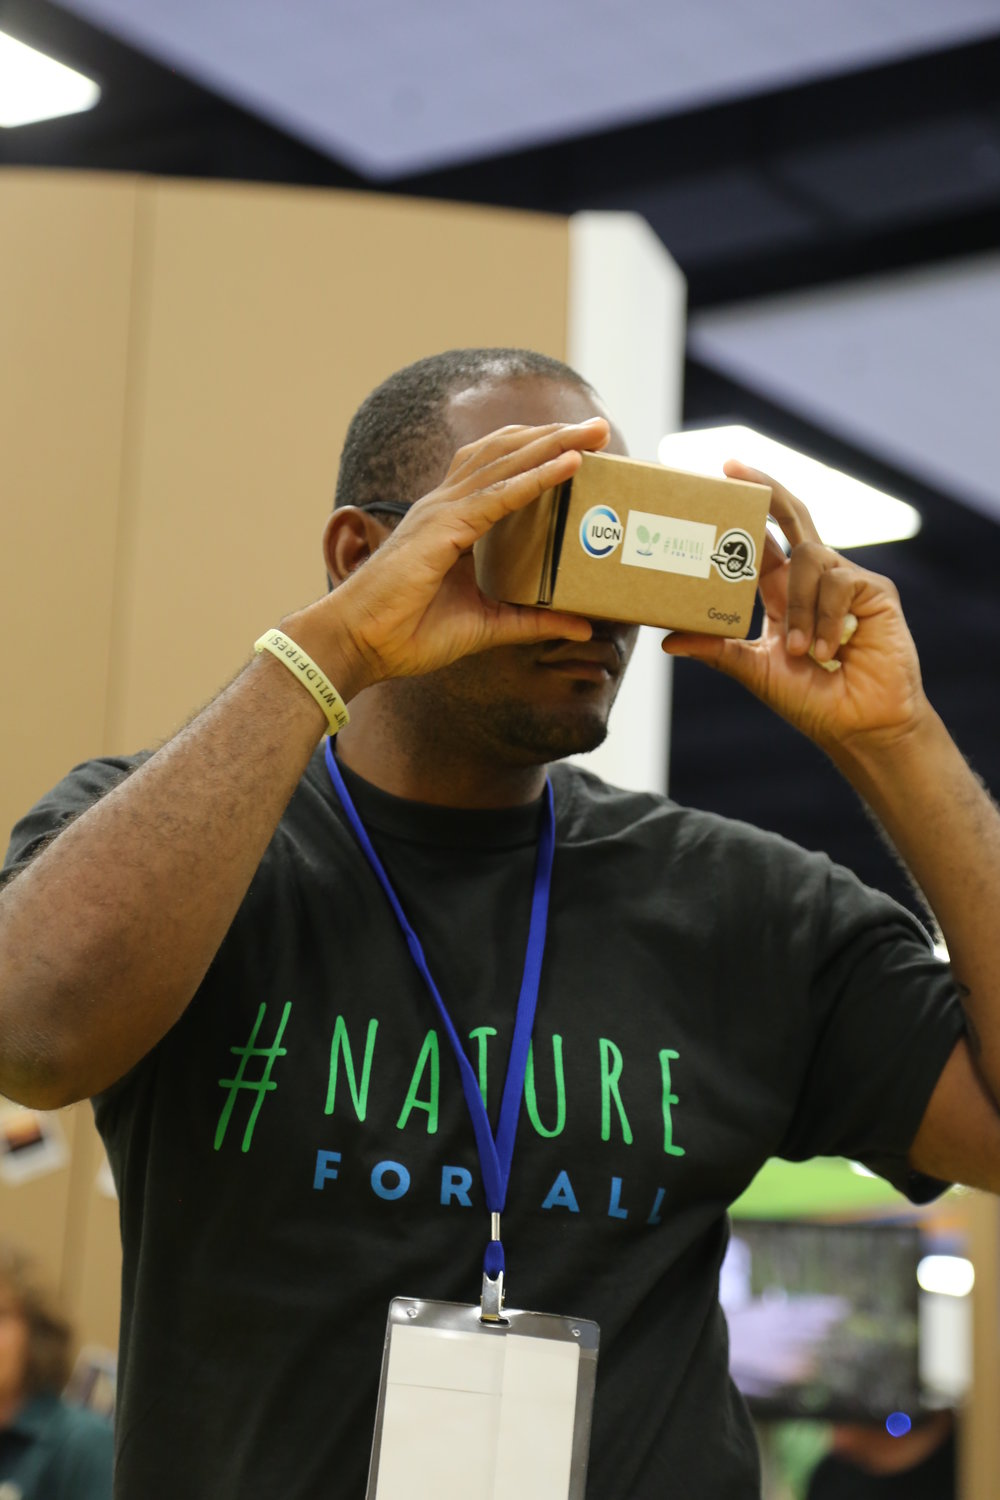 Google Earth Outreach  brought in Google Cardboard technology and took us on a virtual journey to some of the world's most beautiful protected areas.